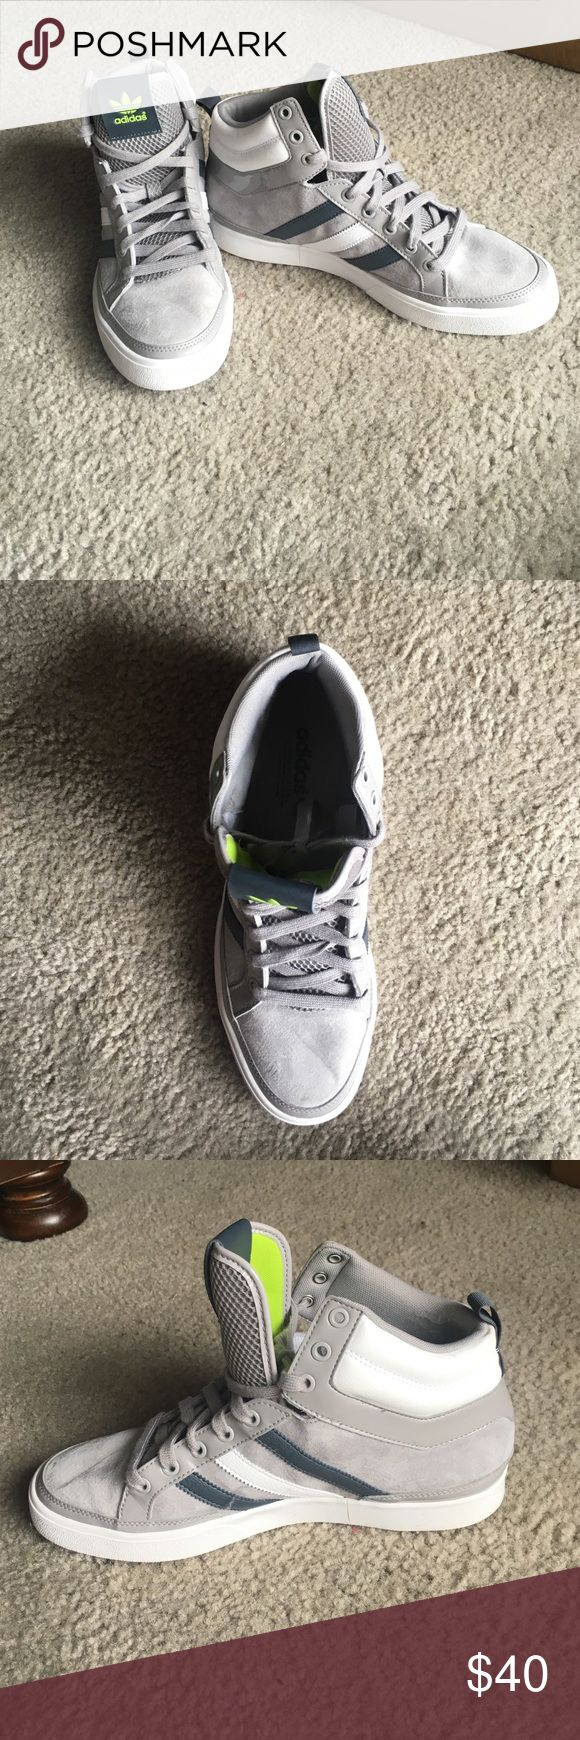 Men's high top adidas shoes Men's grey and white high top adidas shoes like new, used once, like new adidas Shoes Sneakers